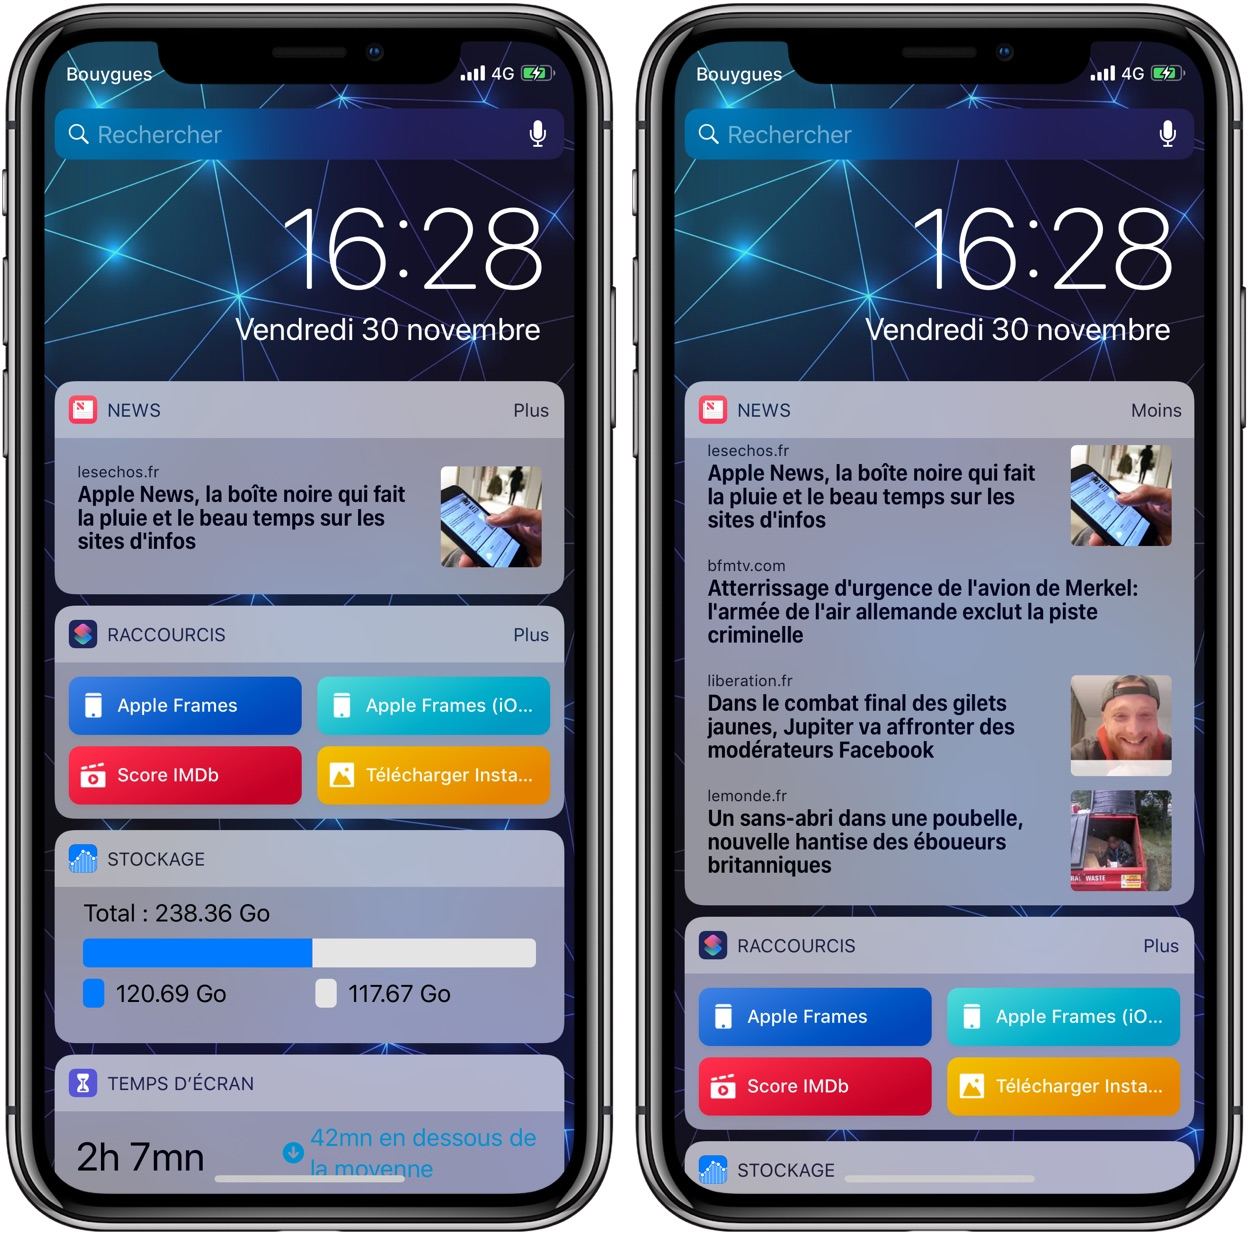 Le Widget News De L Iphone Un Pourvoyeur De Trafic Courtisé Par Les Sites D Information